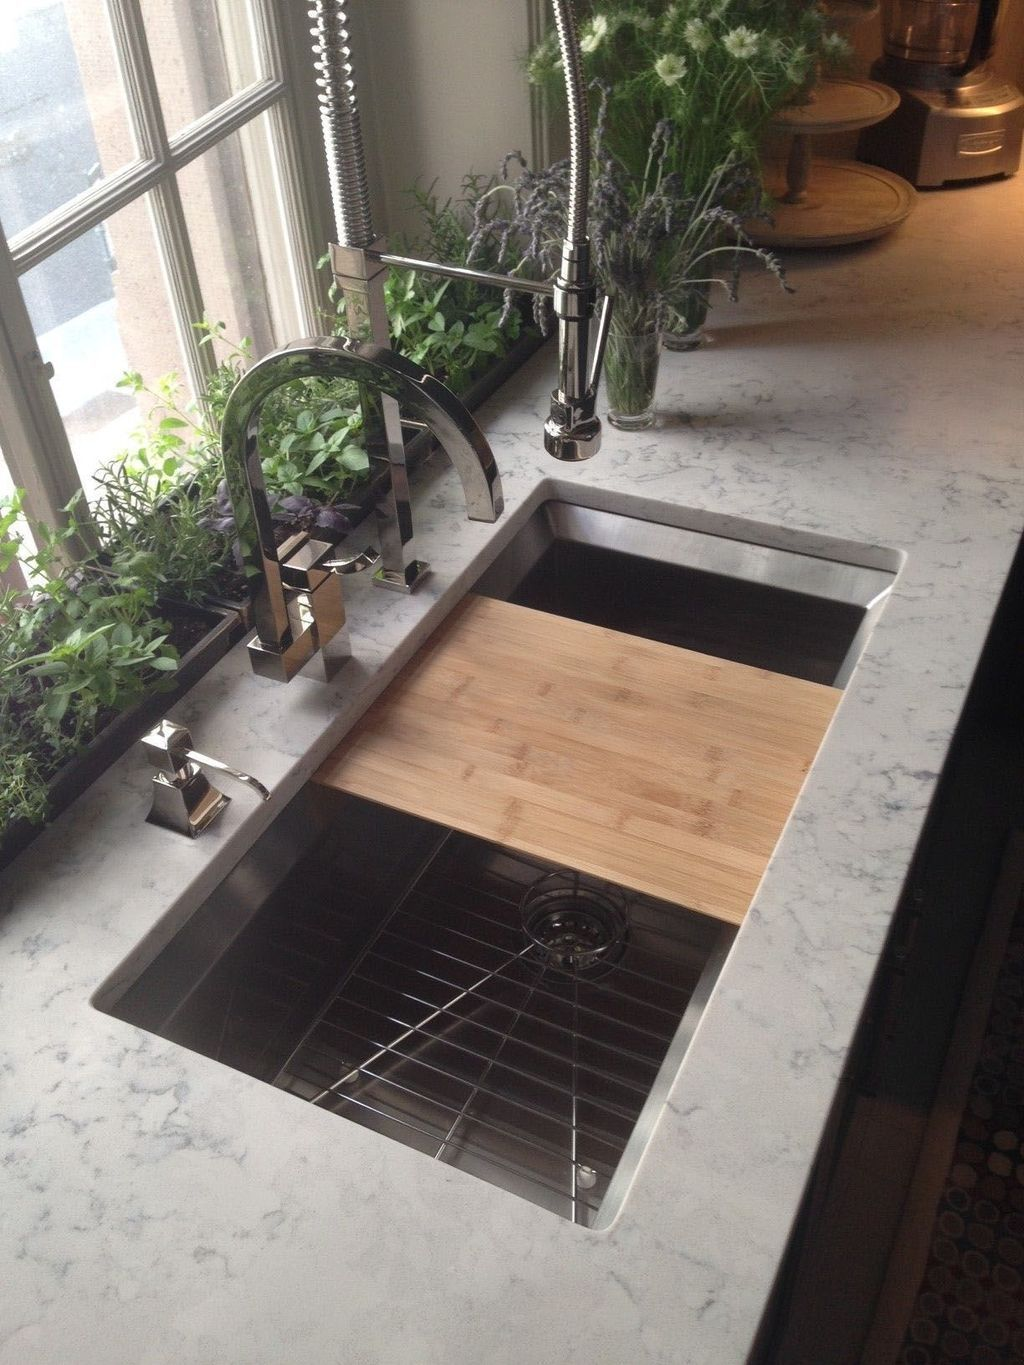 40+ Latest Kitchen Sink Ideas For Upgrade Your Kitchens